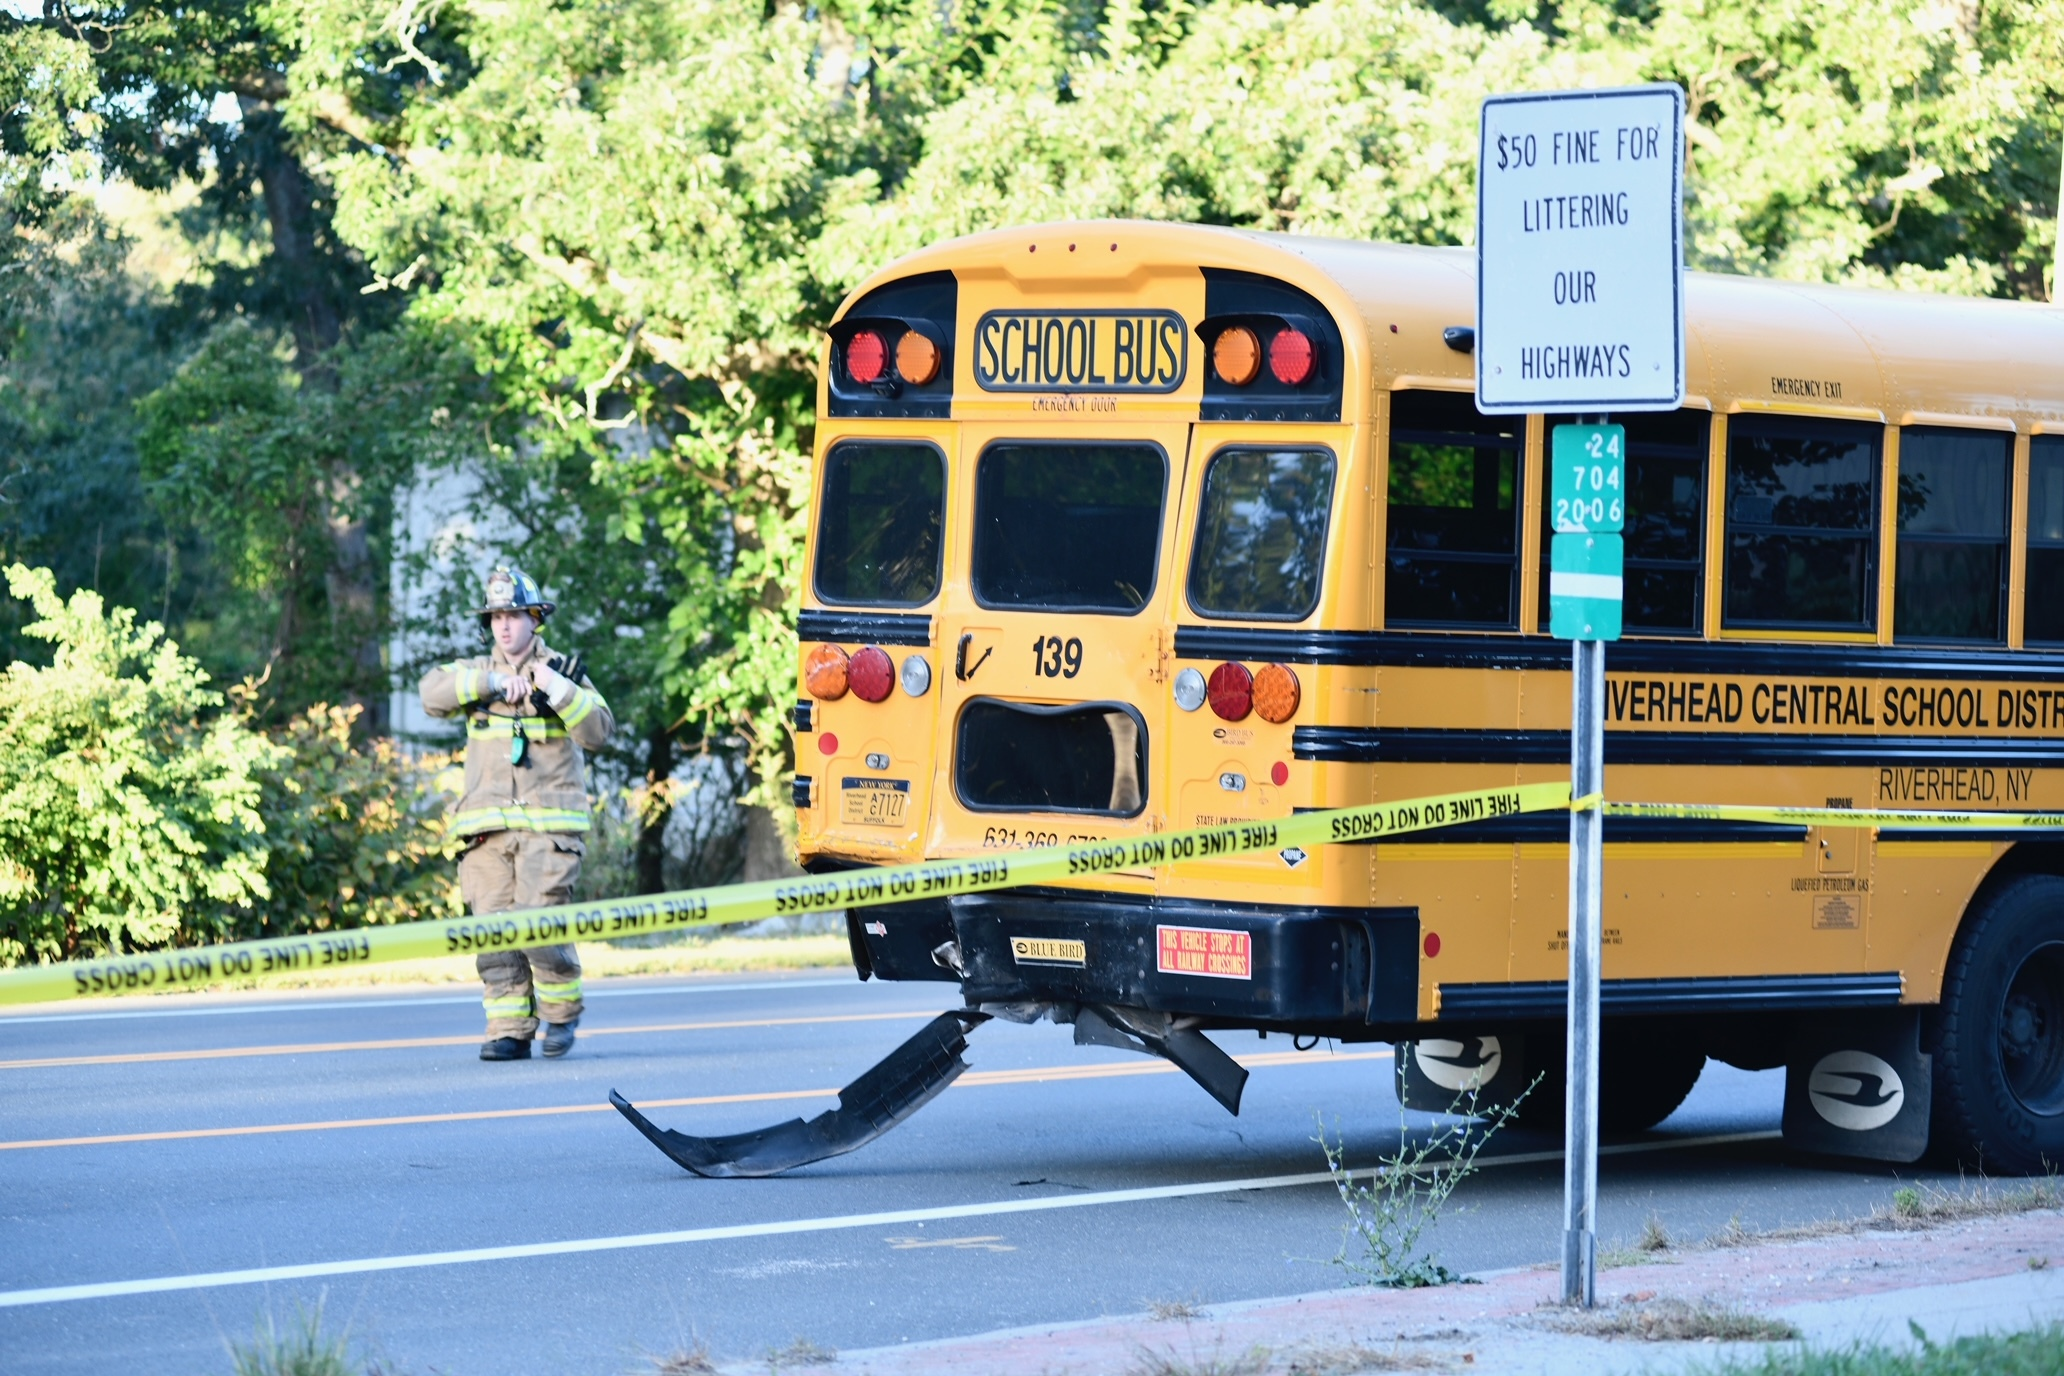 Because a school bus was involved, the call went out  to first responders as a mass casualty incident.